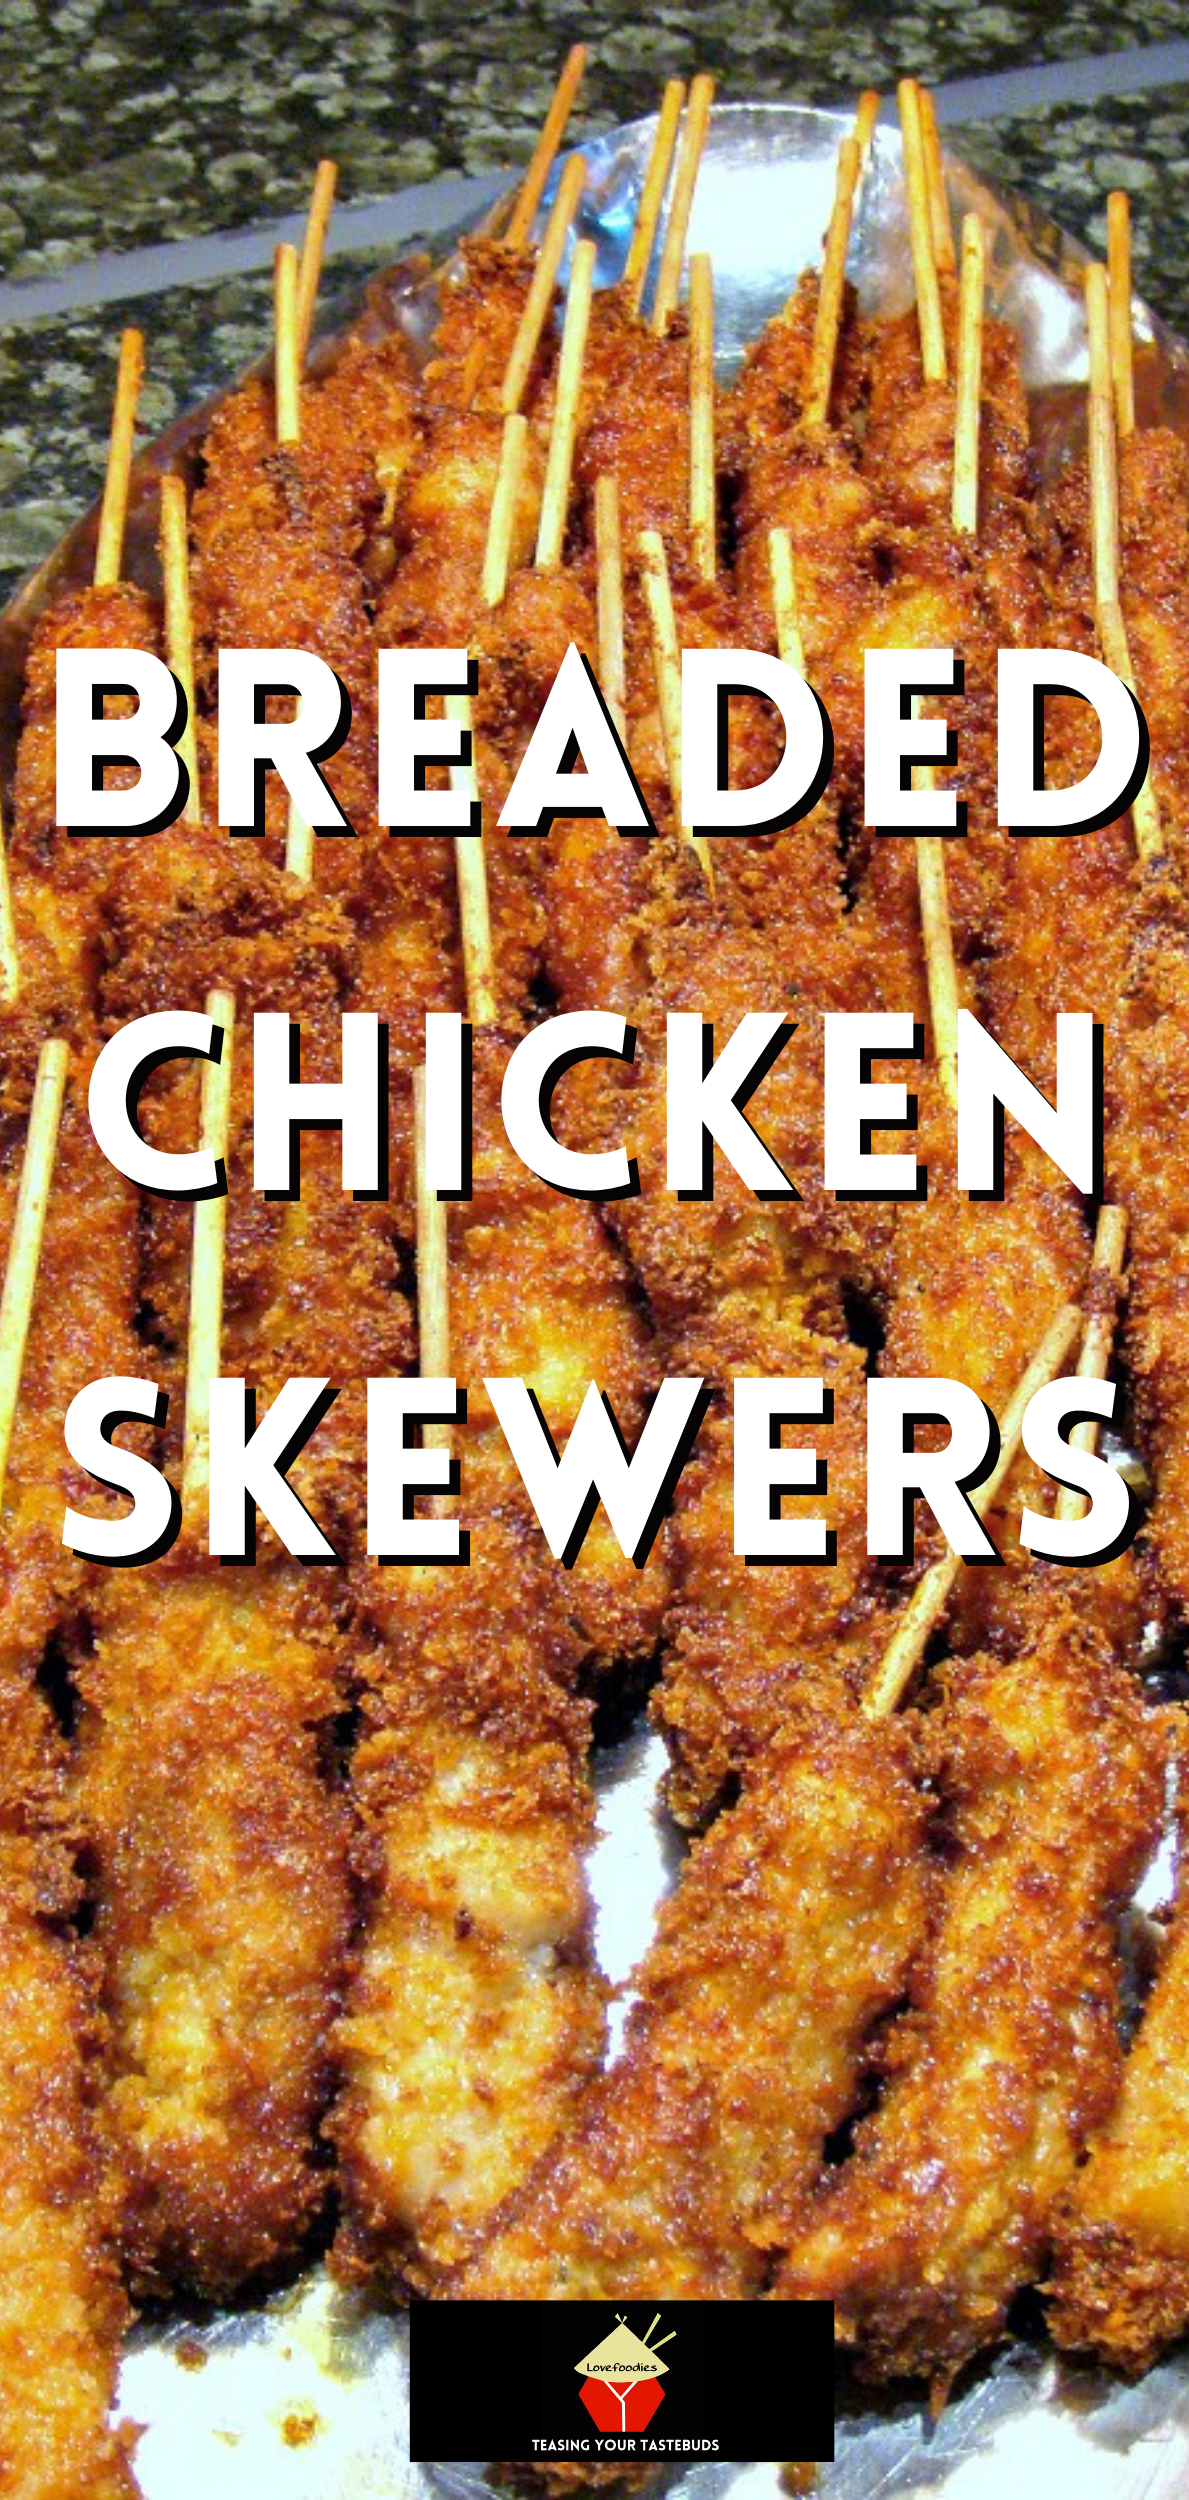 Breaded Chicken Skewers. These are a wonderful little appetizer or party food. Quick and easy to make and juicy to the bite too! Serve warm with your favorite dips. These always go fast at parties so be sure you make plenty!